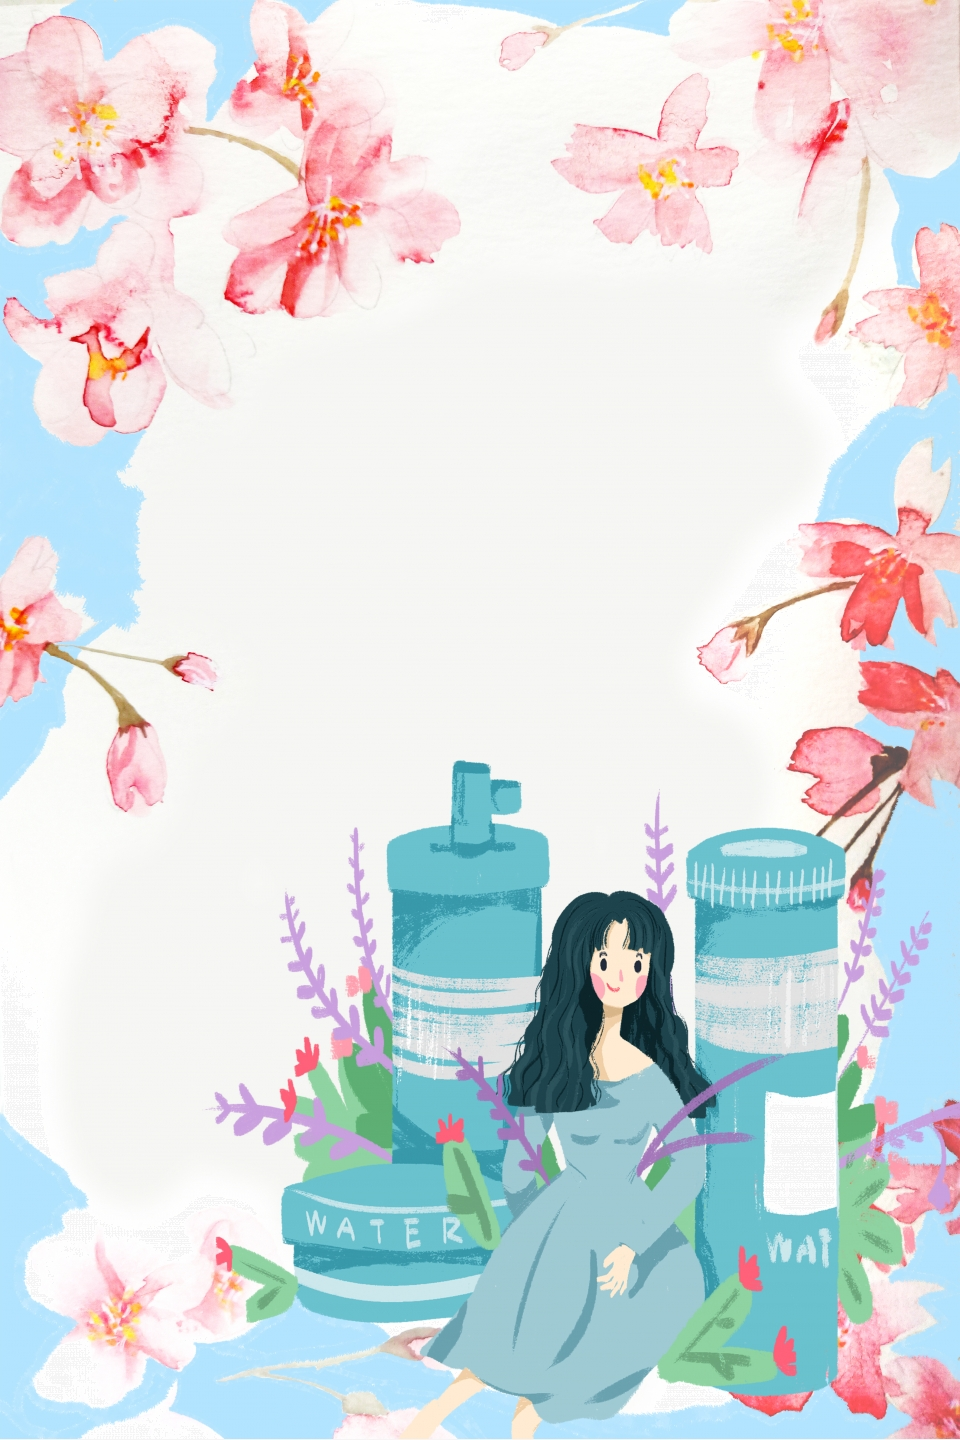 Creative Aesthetic Beauty Salon Skin Care Beauty Salon Health Museum Beauty Background Image For Free Download